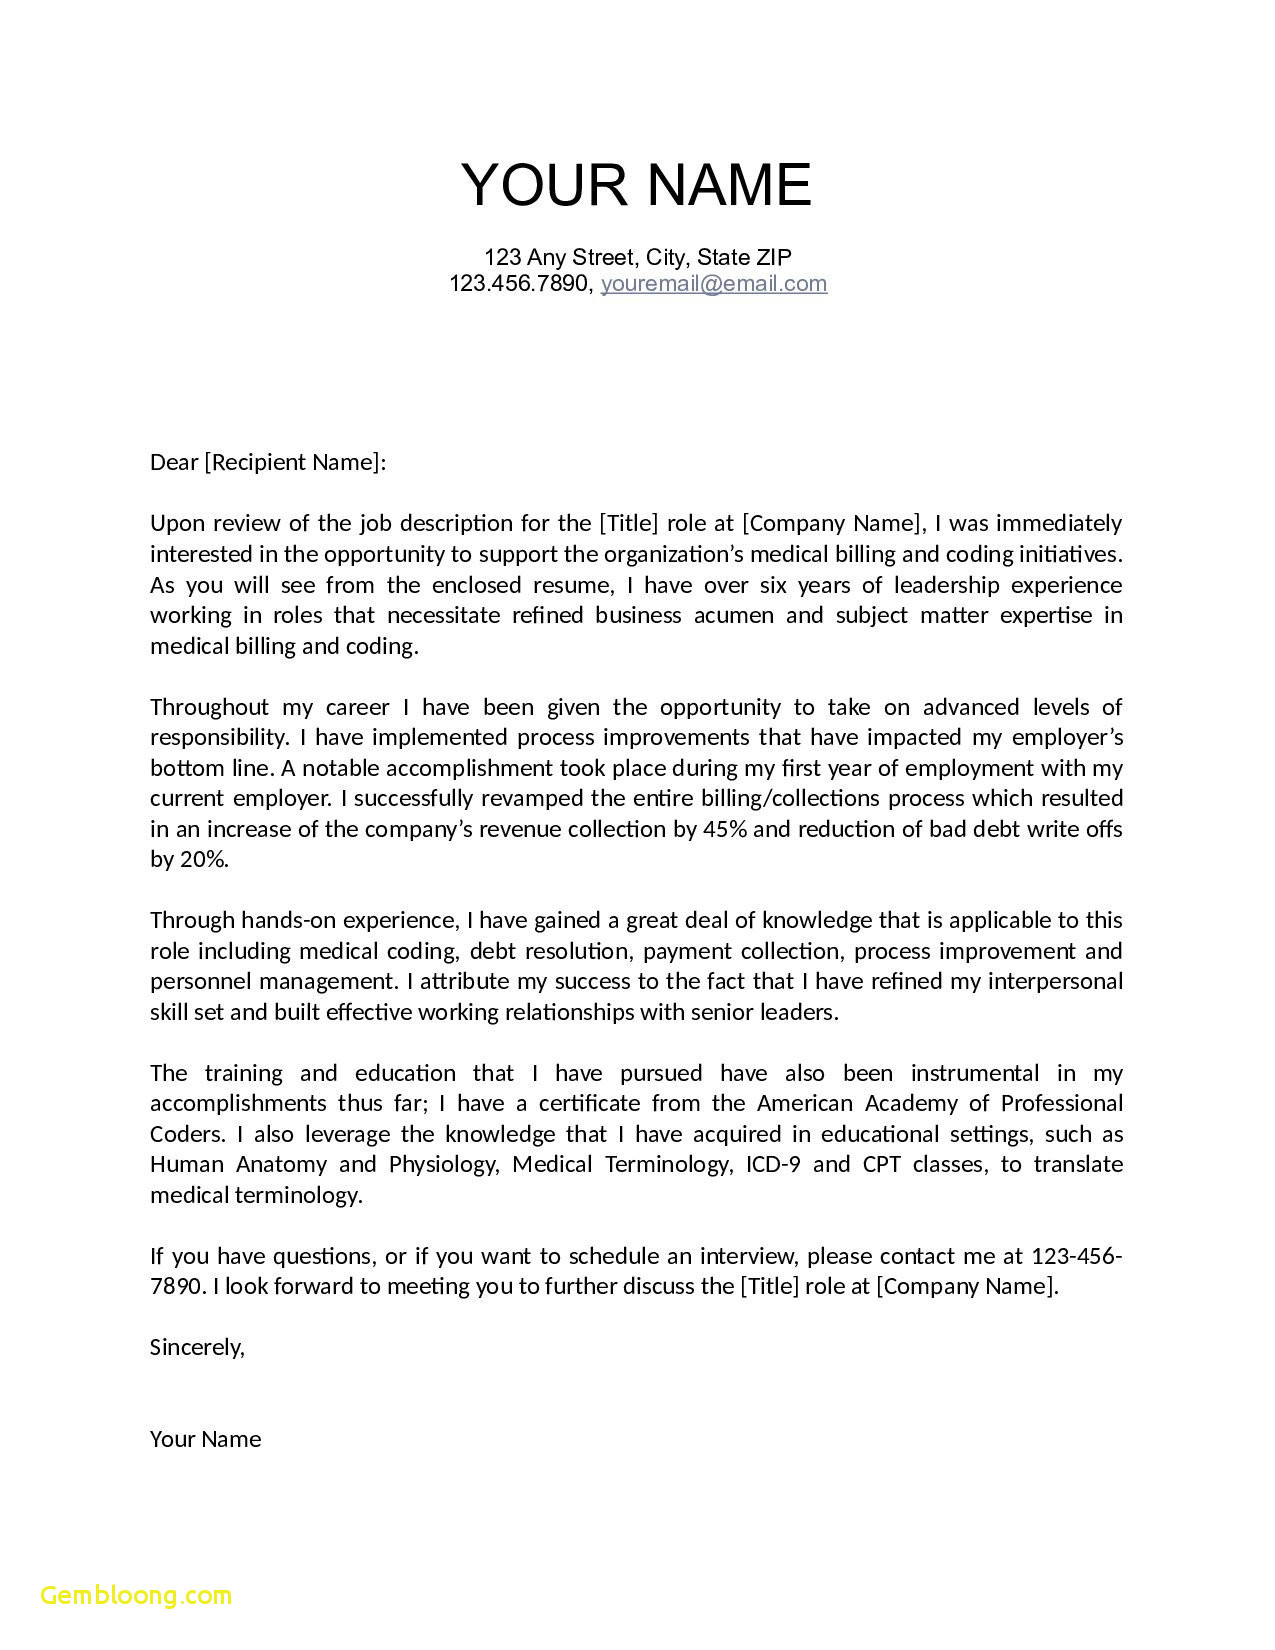 Expert Opinion Letter Template - Teaching Resume Cover Letter Download now Cover Letter Template for